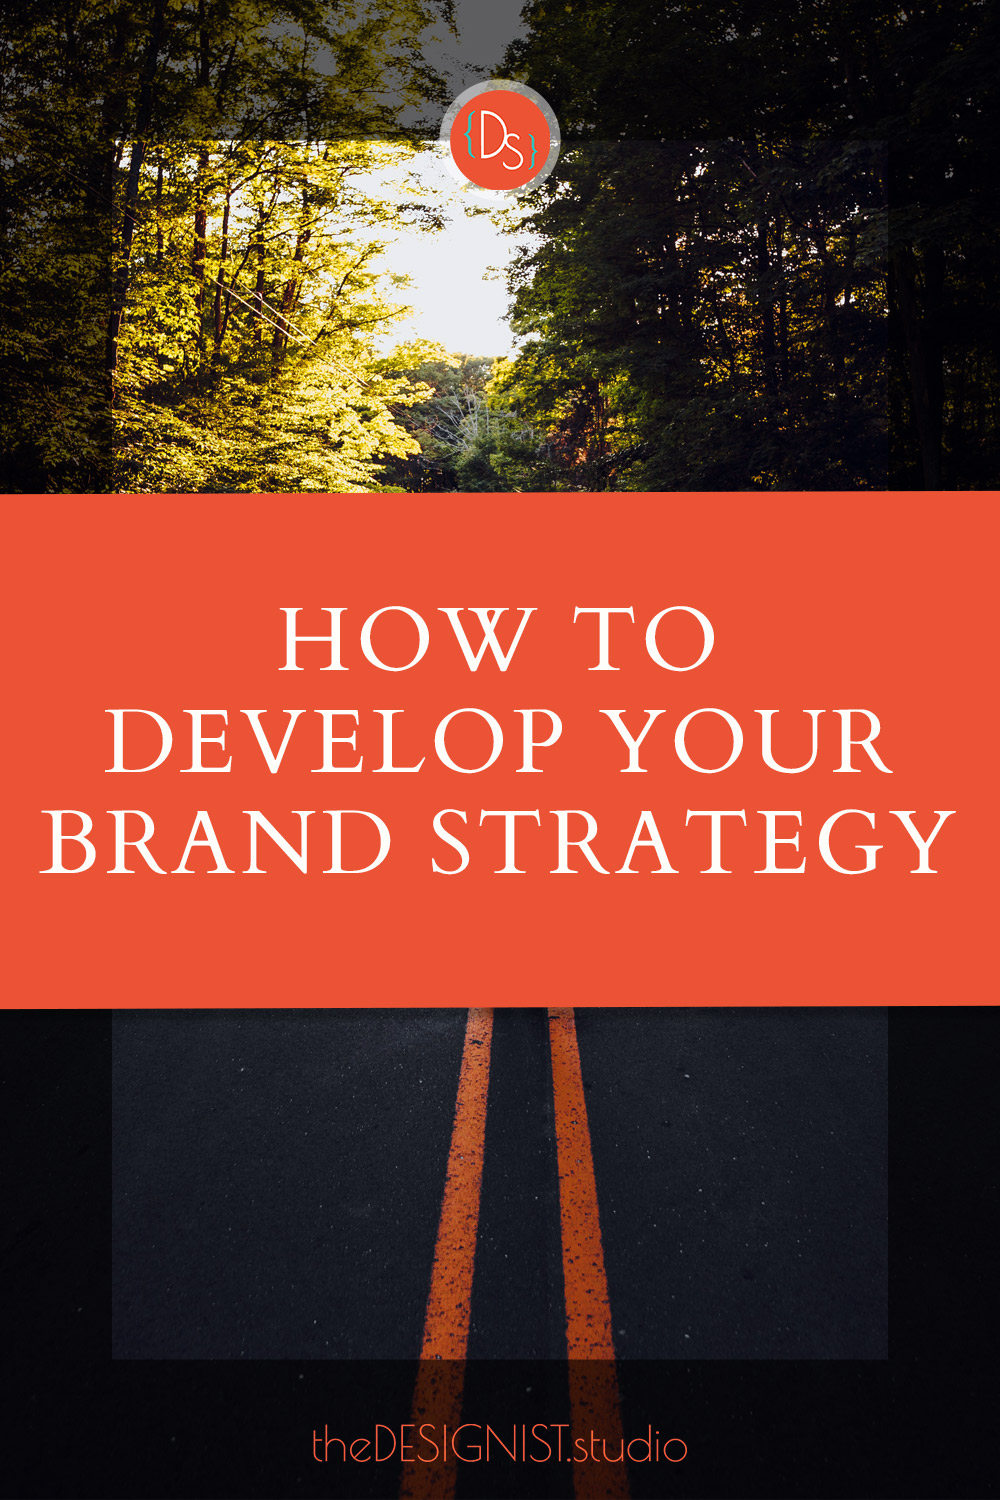 How to develop your brand strategy